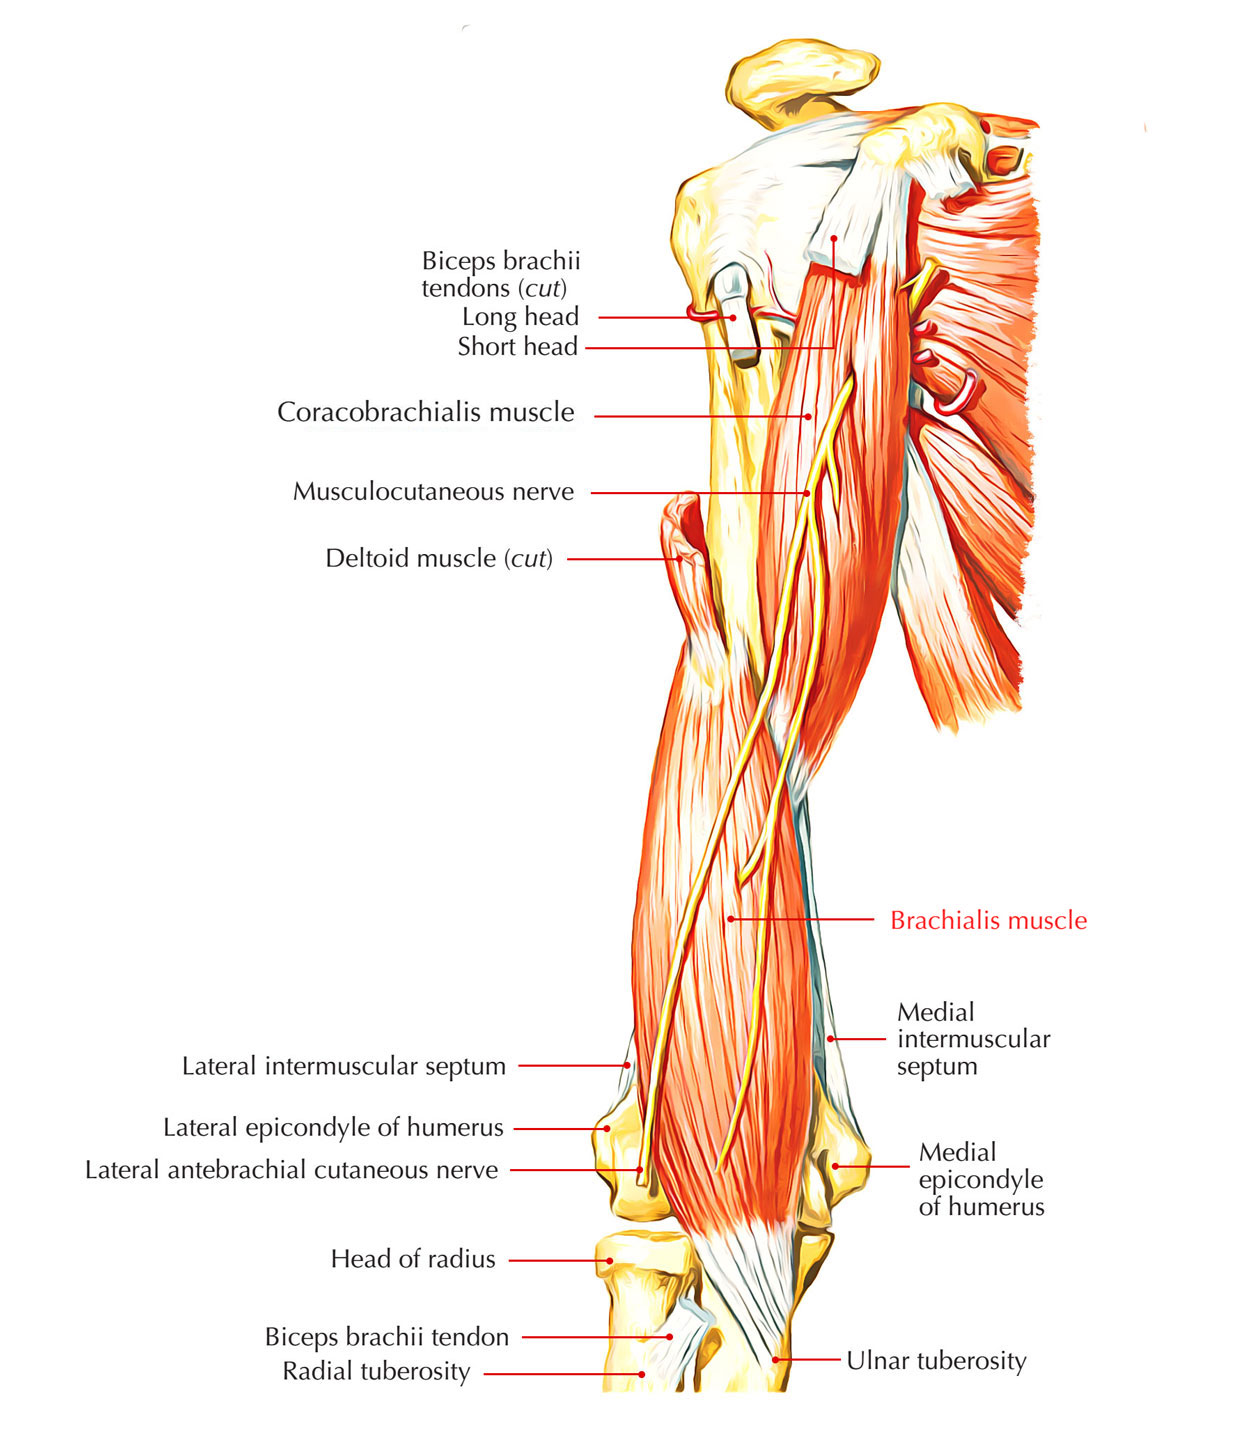 Easy Notes On 【Brachialis Muscle】Learn in Just 4 Minutes!